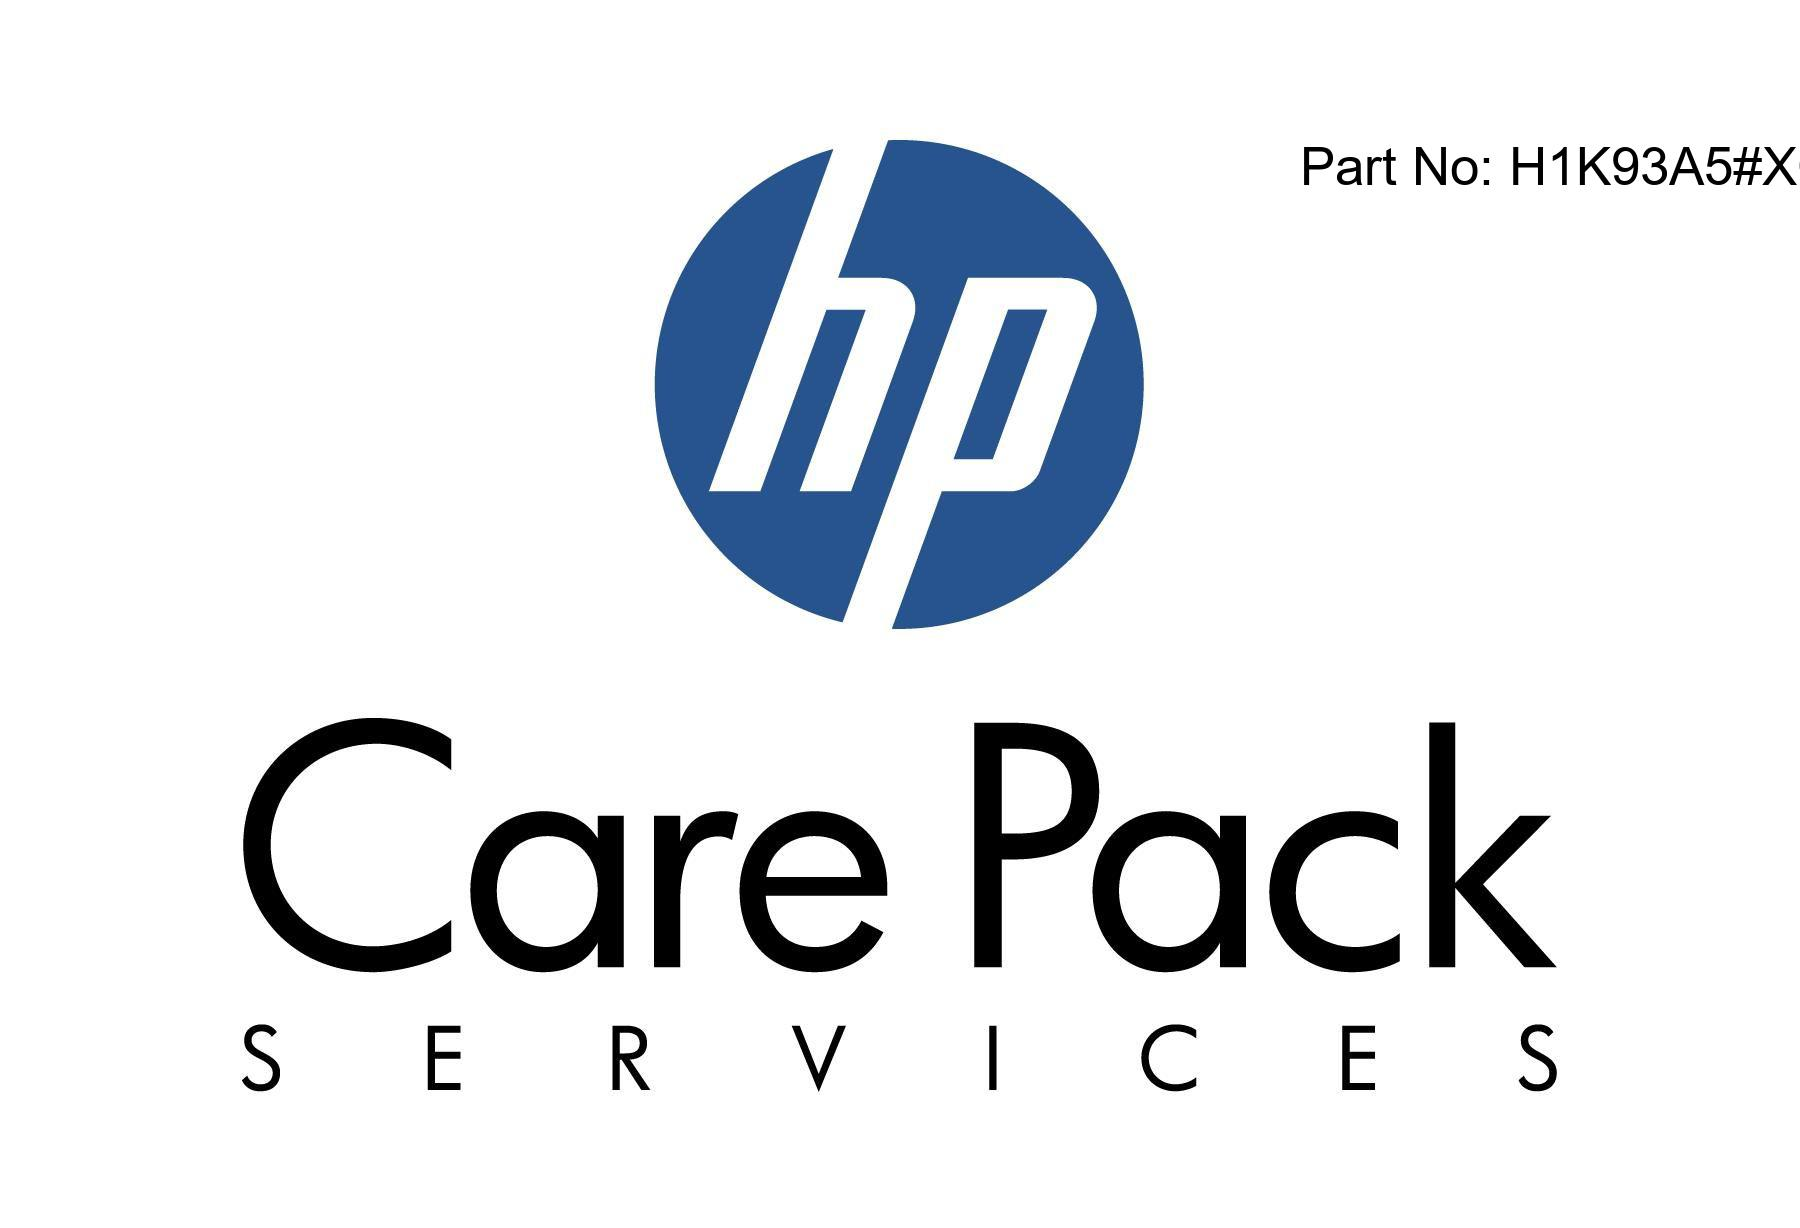 Proactive Care 24x7 Software Service with Defective Media Retention - Technical support - for HPE 3PAR 8400 Security Software Suite - 8 drives - phone consulting - 5 years - 24x7 - response time: 2 h